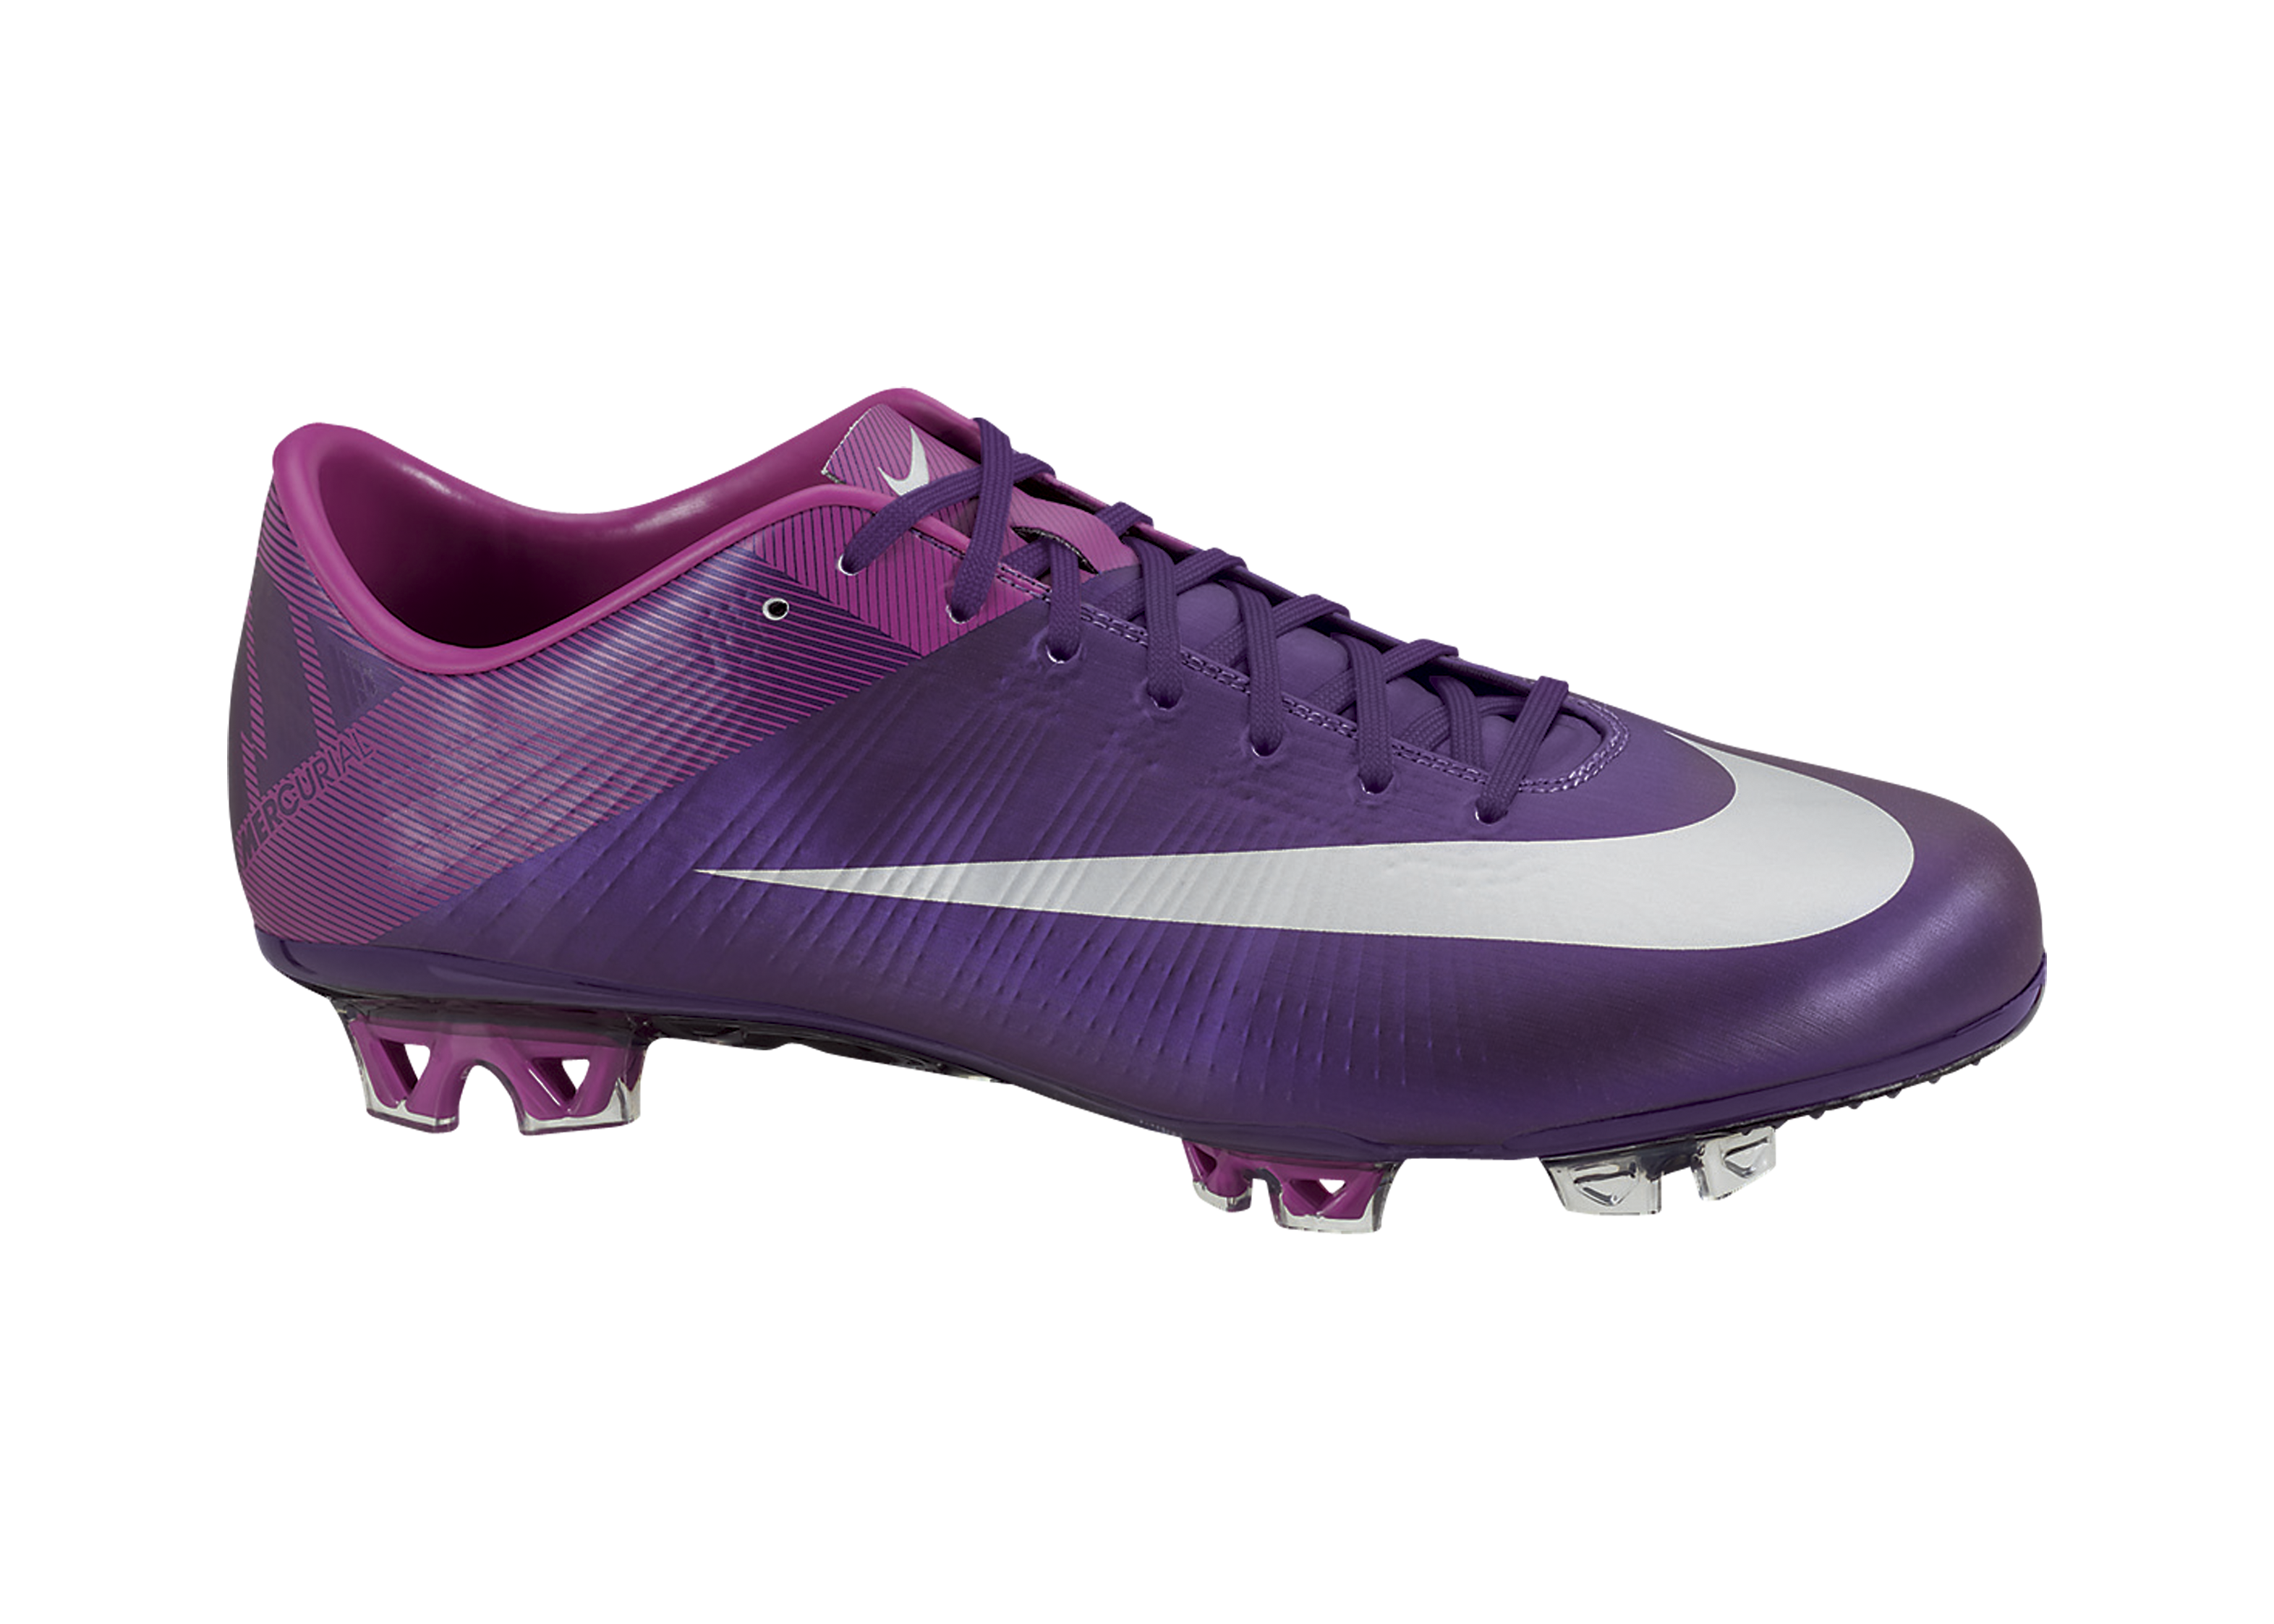 nike mercurial vapor superfly iii metallic purple. Black Bedroom Furniture Sets. Home Design Ideas